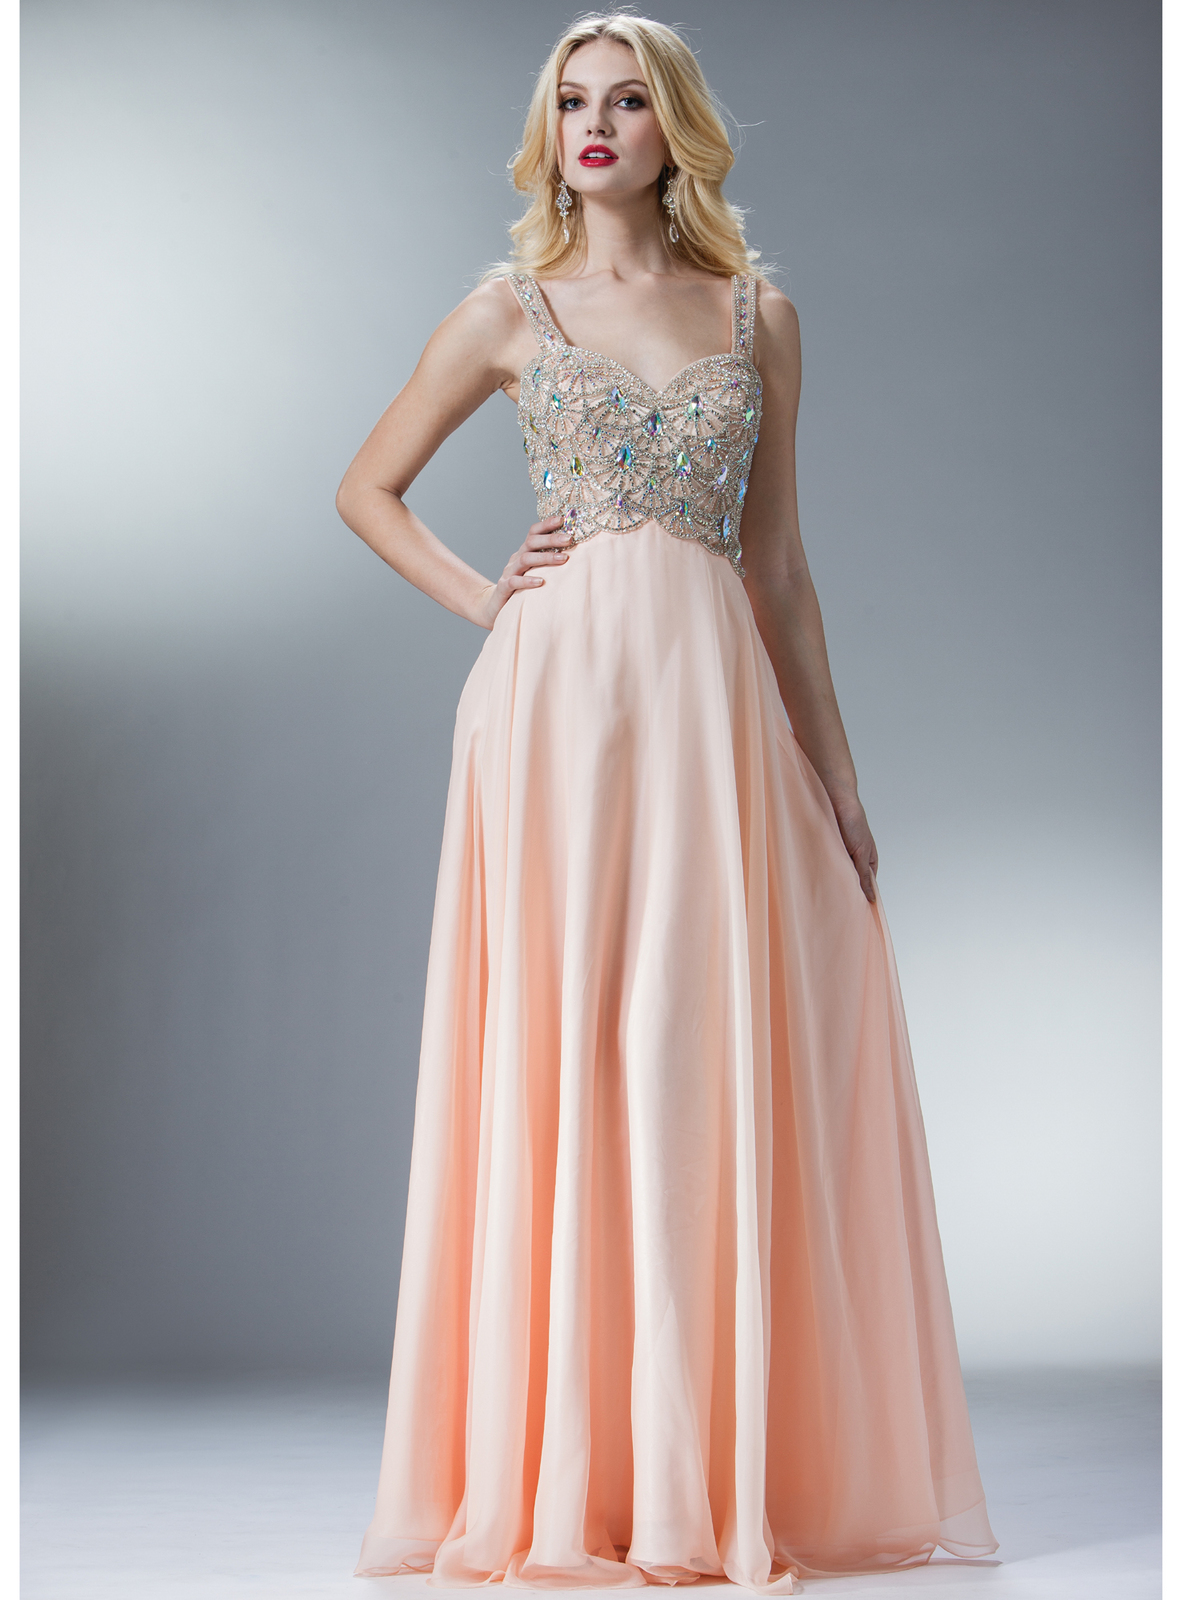 Blush A-line Chiffon Prom Dress | Sung Boutique L.A.